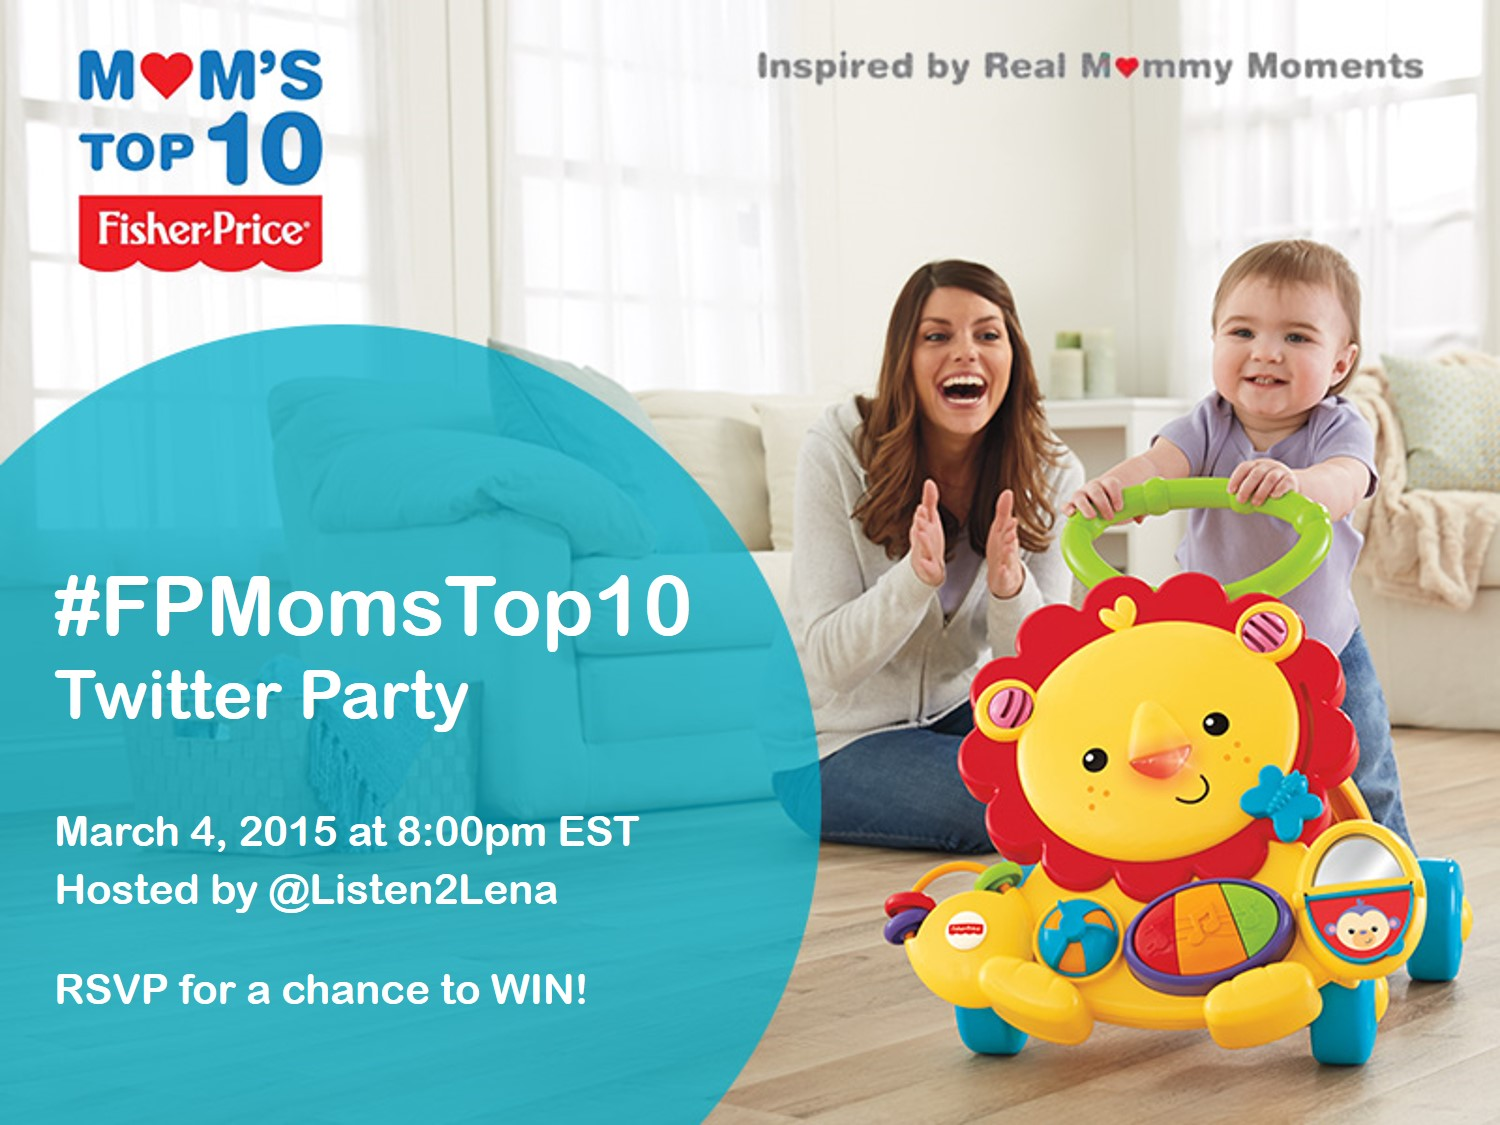 Join the #FPMomsTop10 Twitter Party March 4th 8pm EST